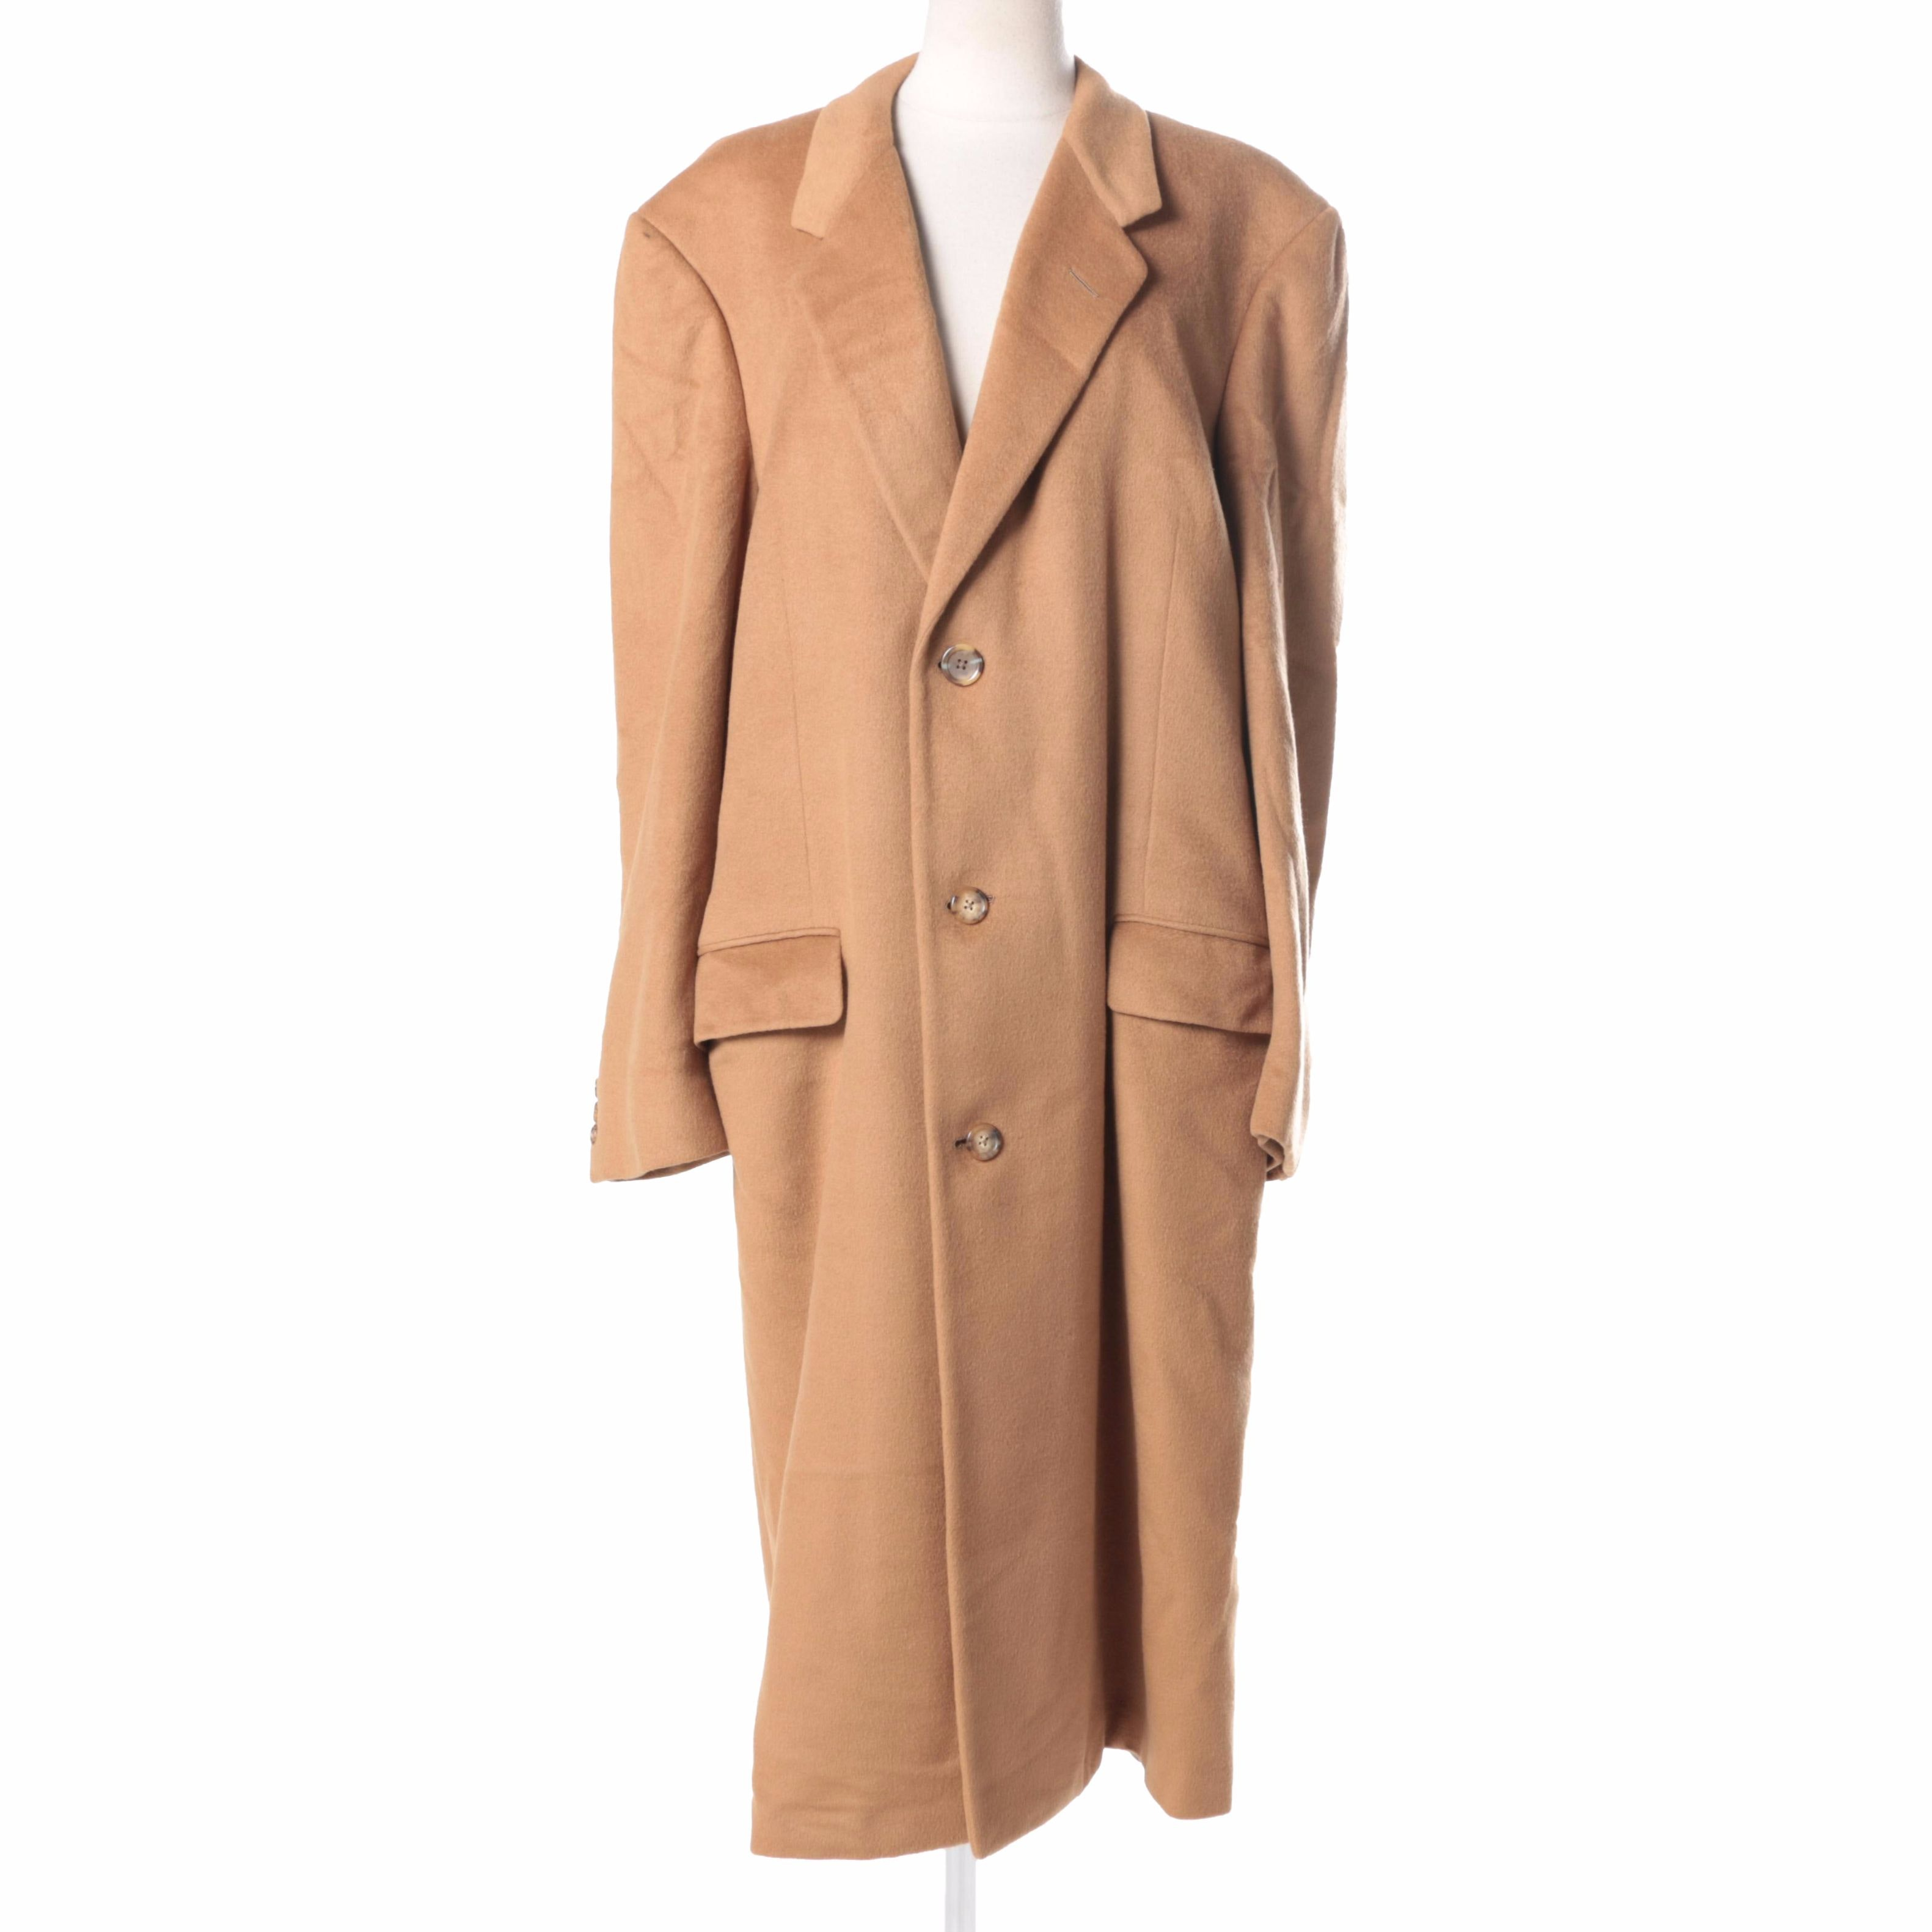 Tan Cashmere Overcoat by Hickey-Freeman